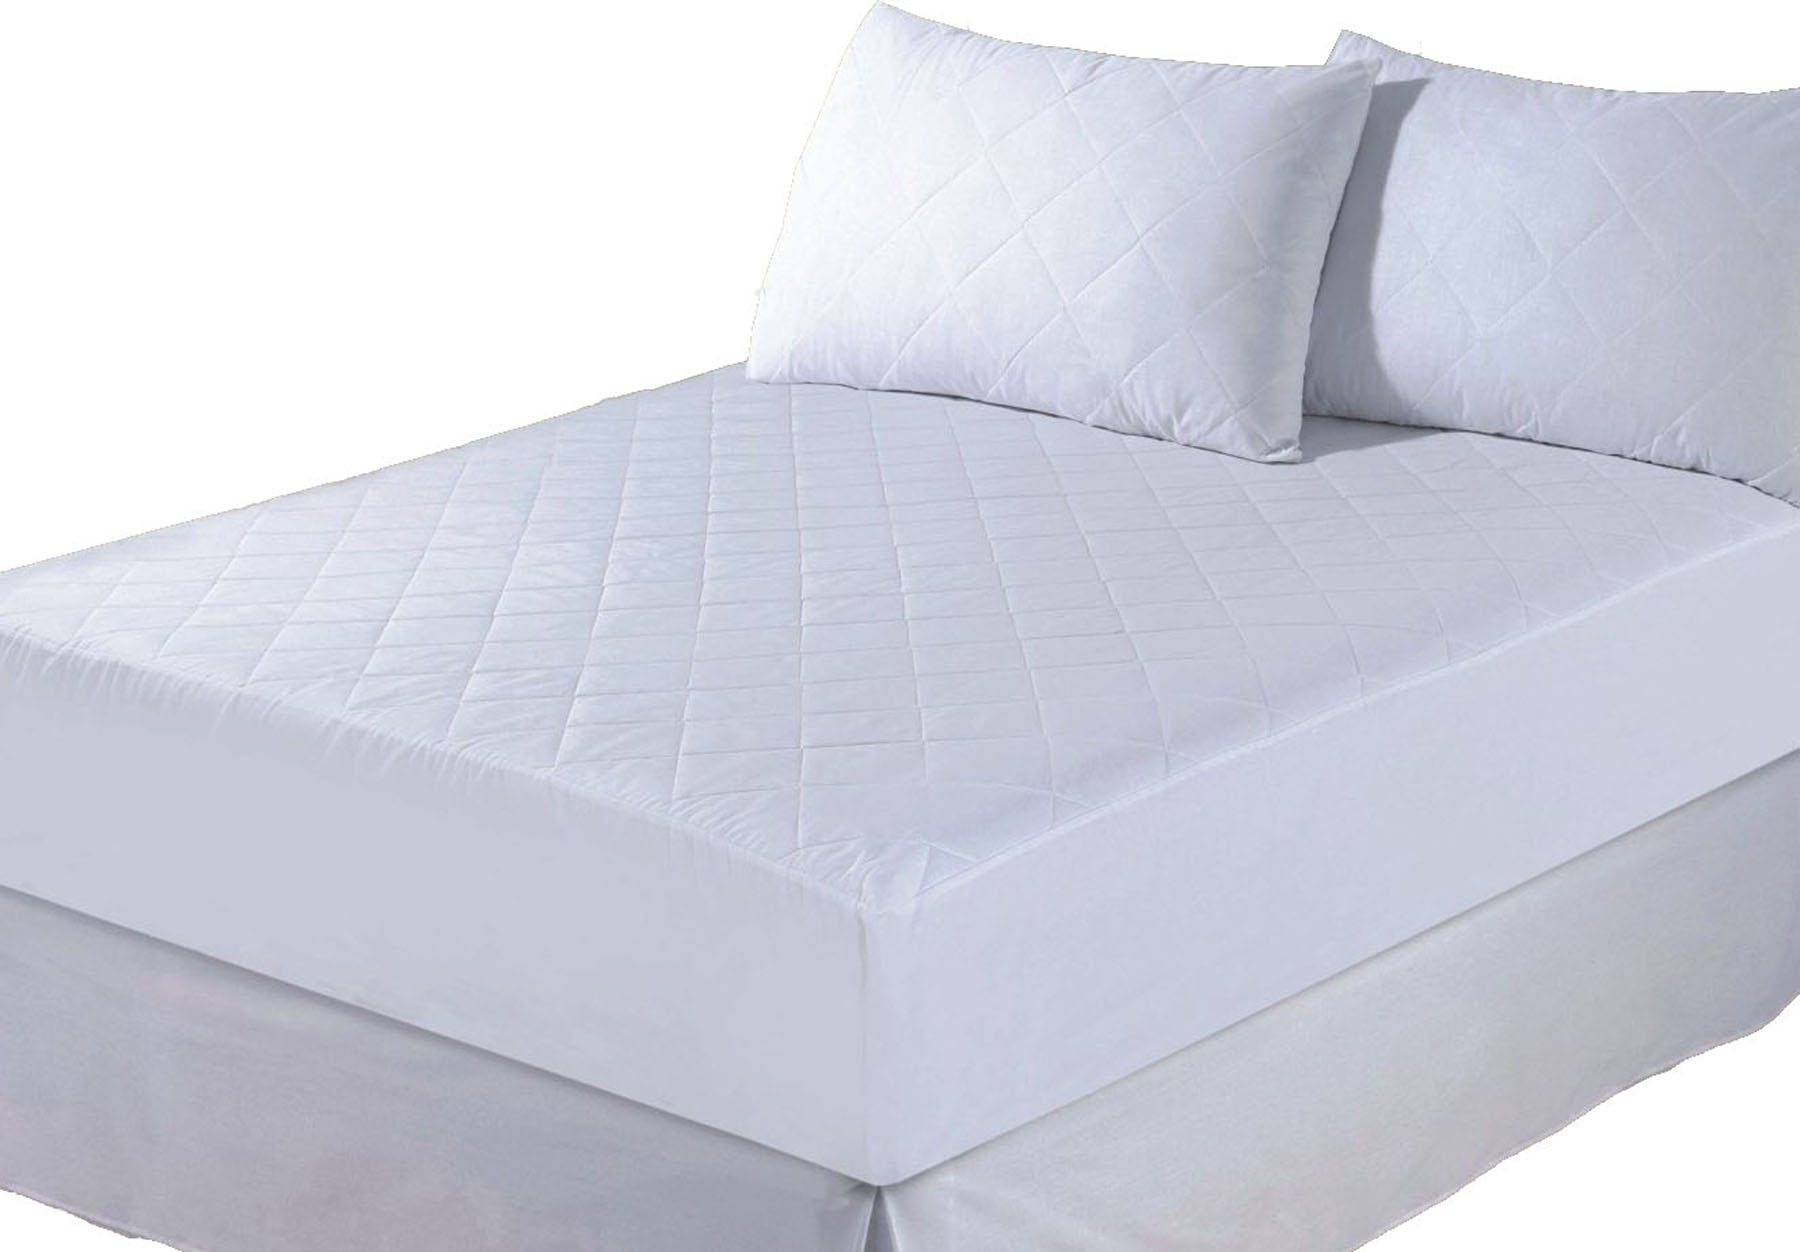 EXTRA DEEP 12 QUILTED MATTRESS PROTECTOR FITTED BED COVER